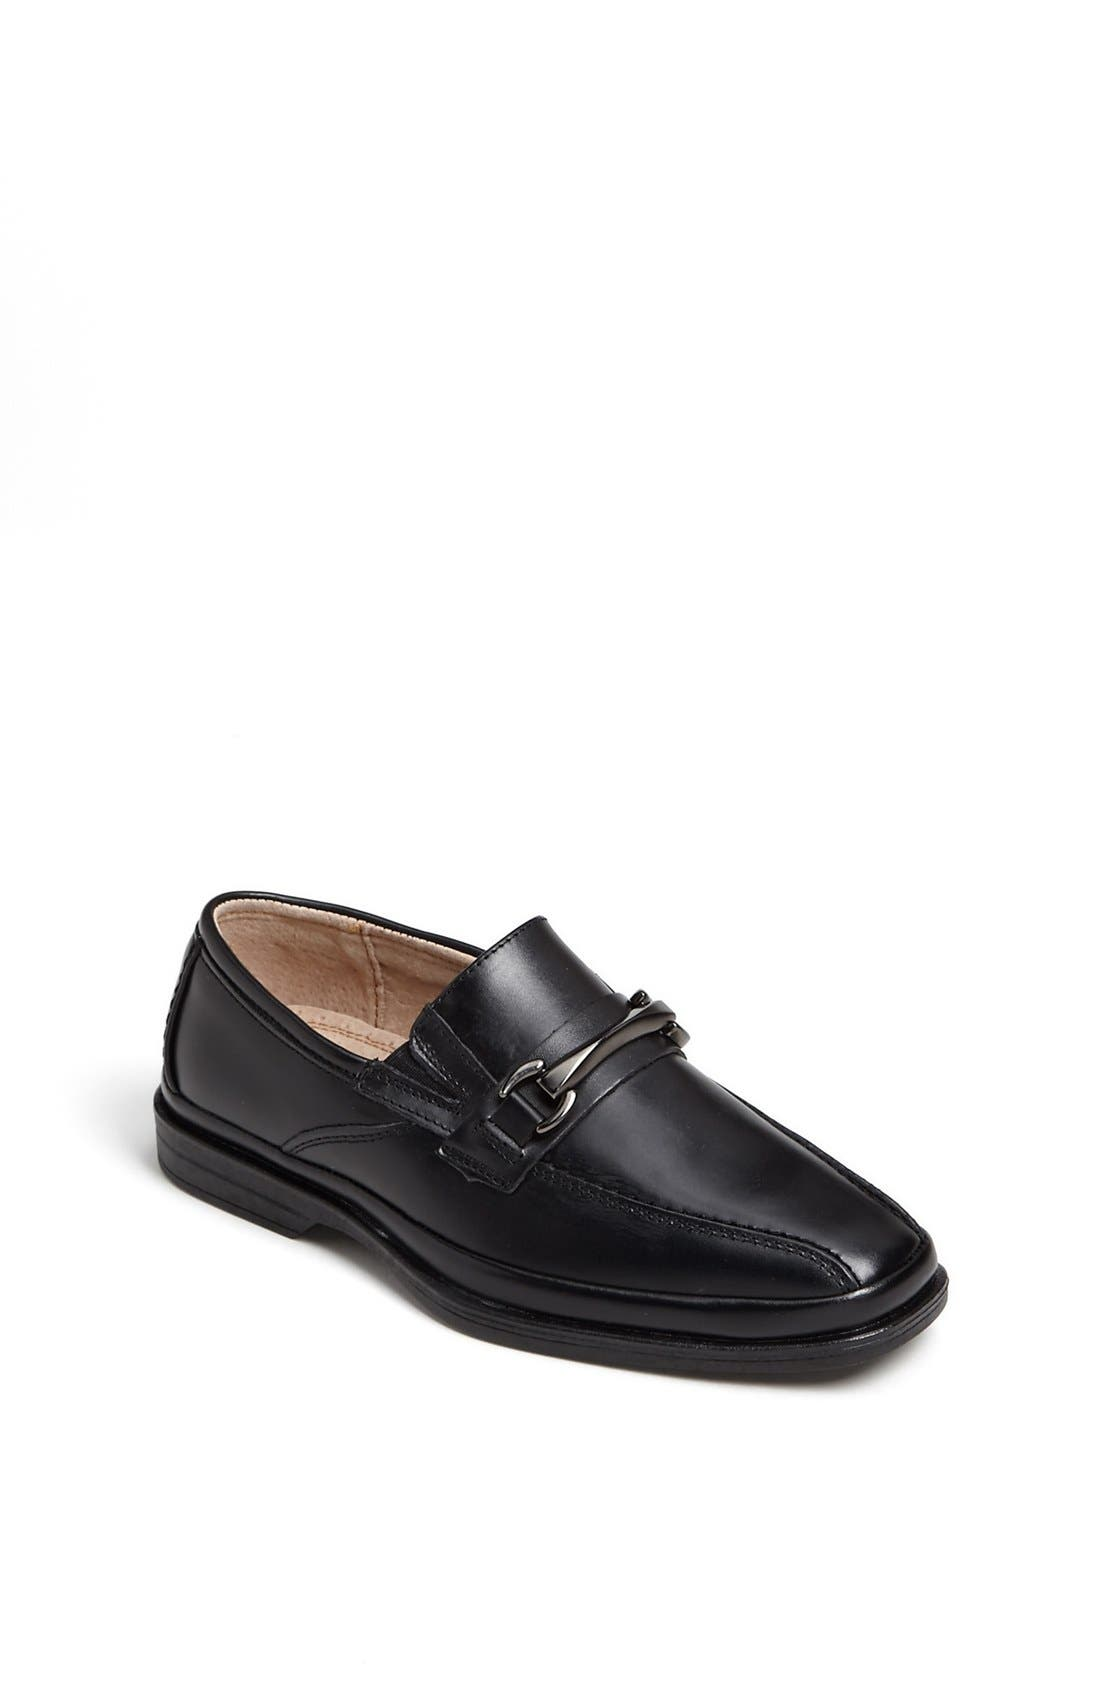 Main Image - Florsheim 'Wrapid Jr.' Slip-On (Toddler, Little Kid & Big Kid)